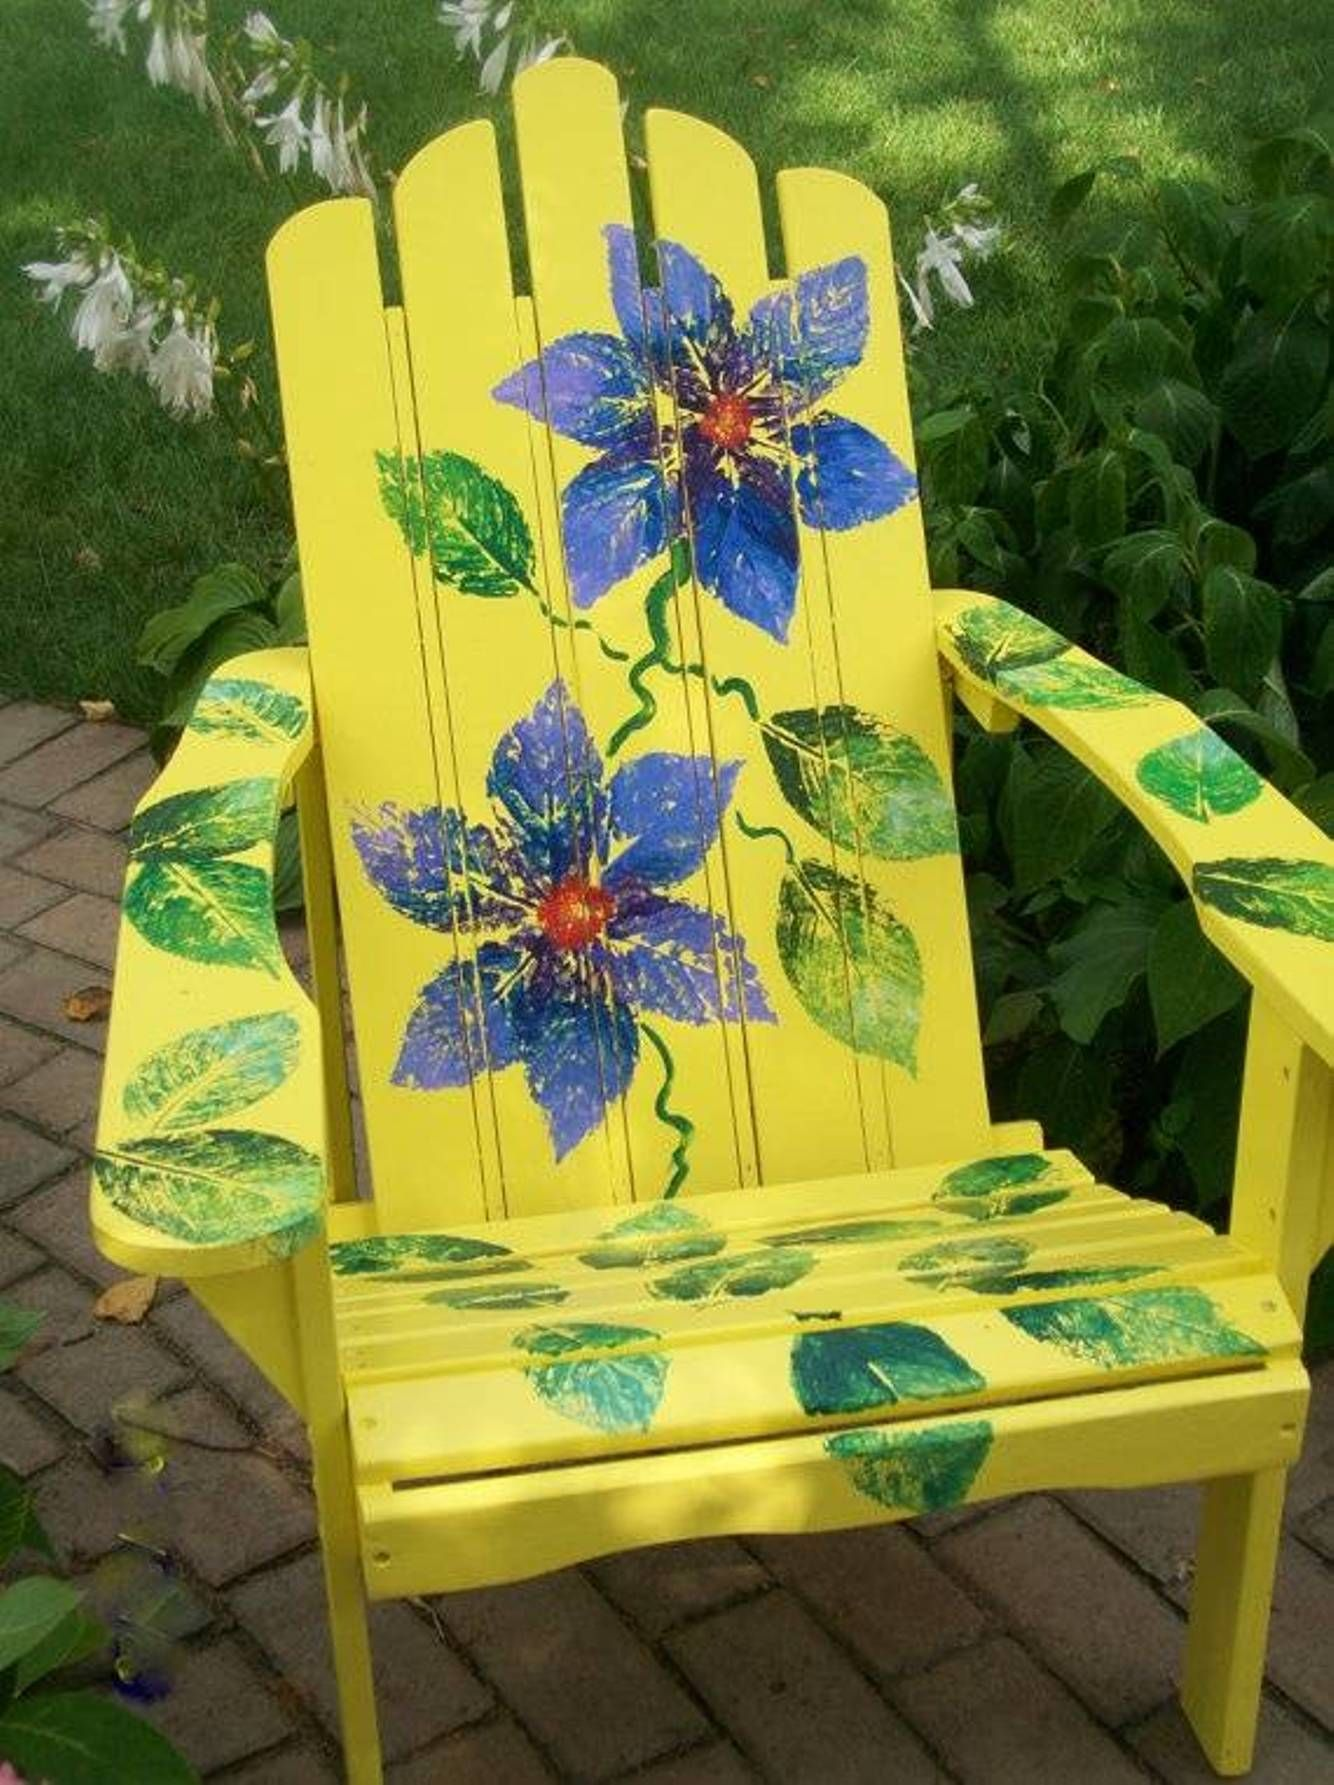 Garden And Lawn Outdoor Adirondack Chairs Yellow Flower Painted